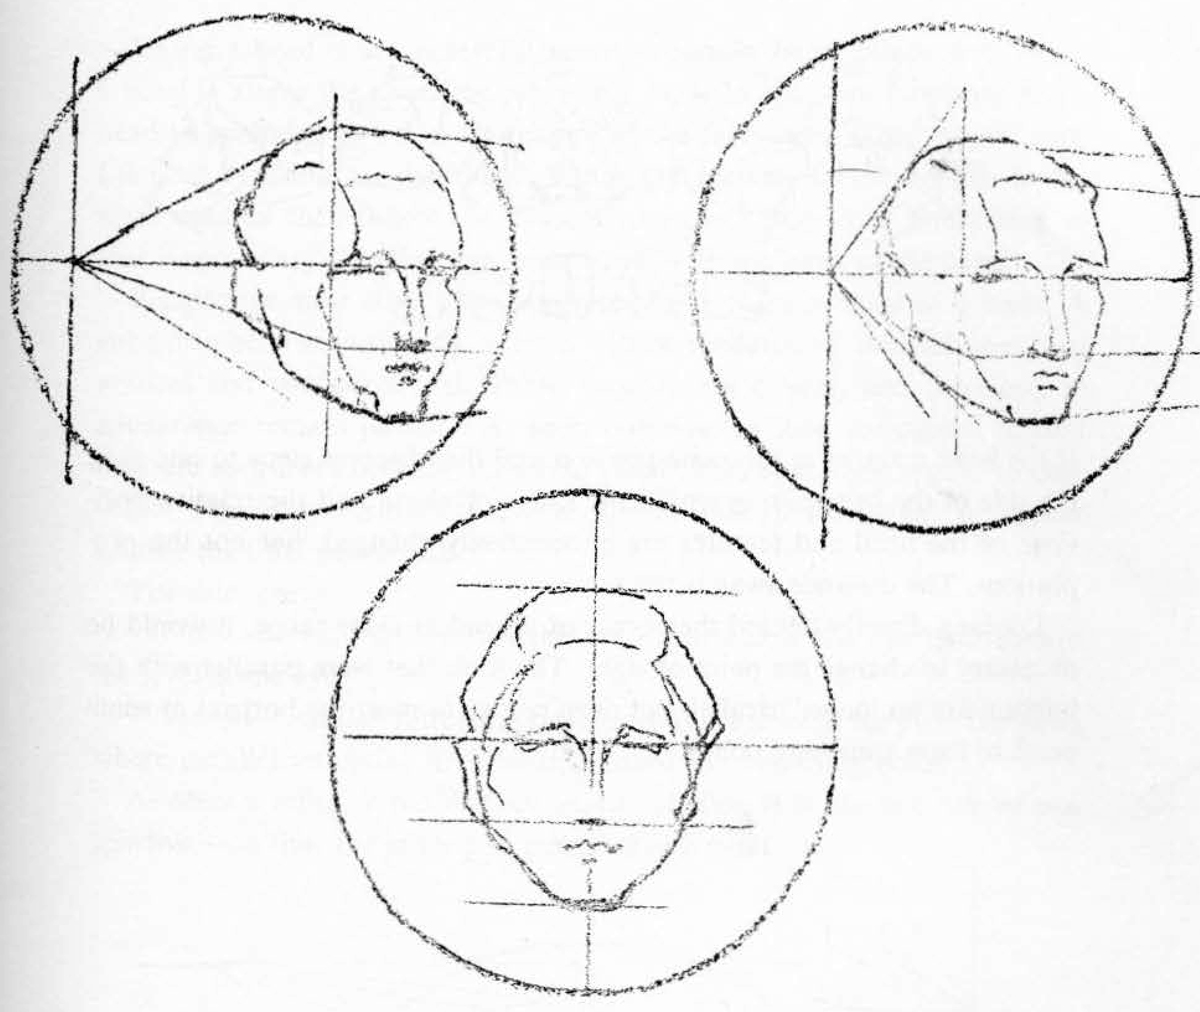 02-drawing-head-in-perspective-The features will parallel the horizontal line.